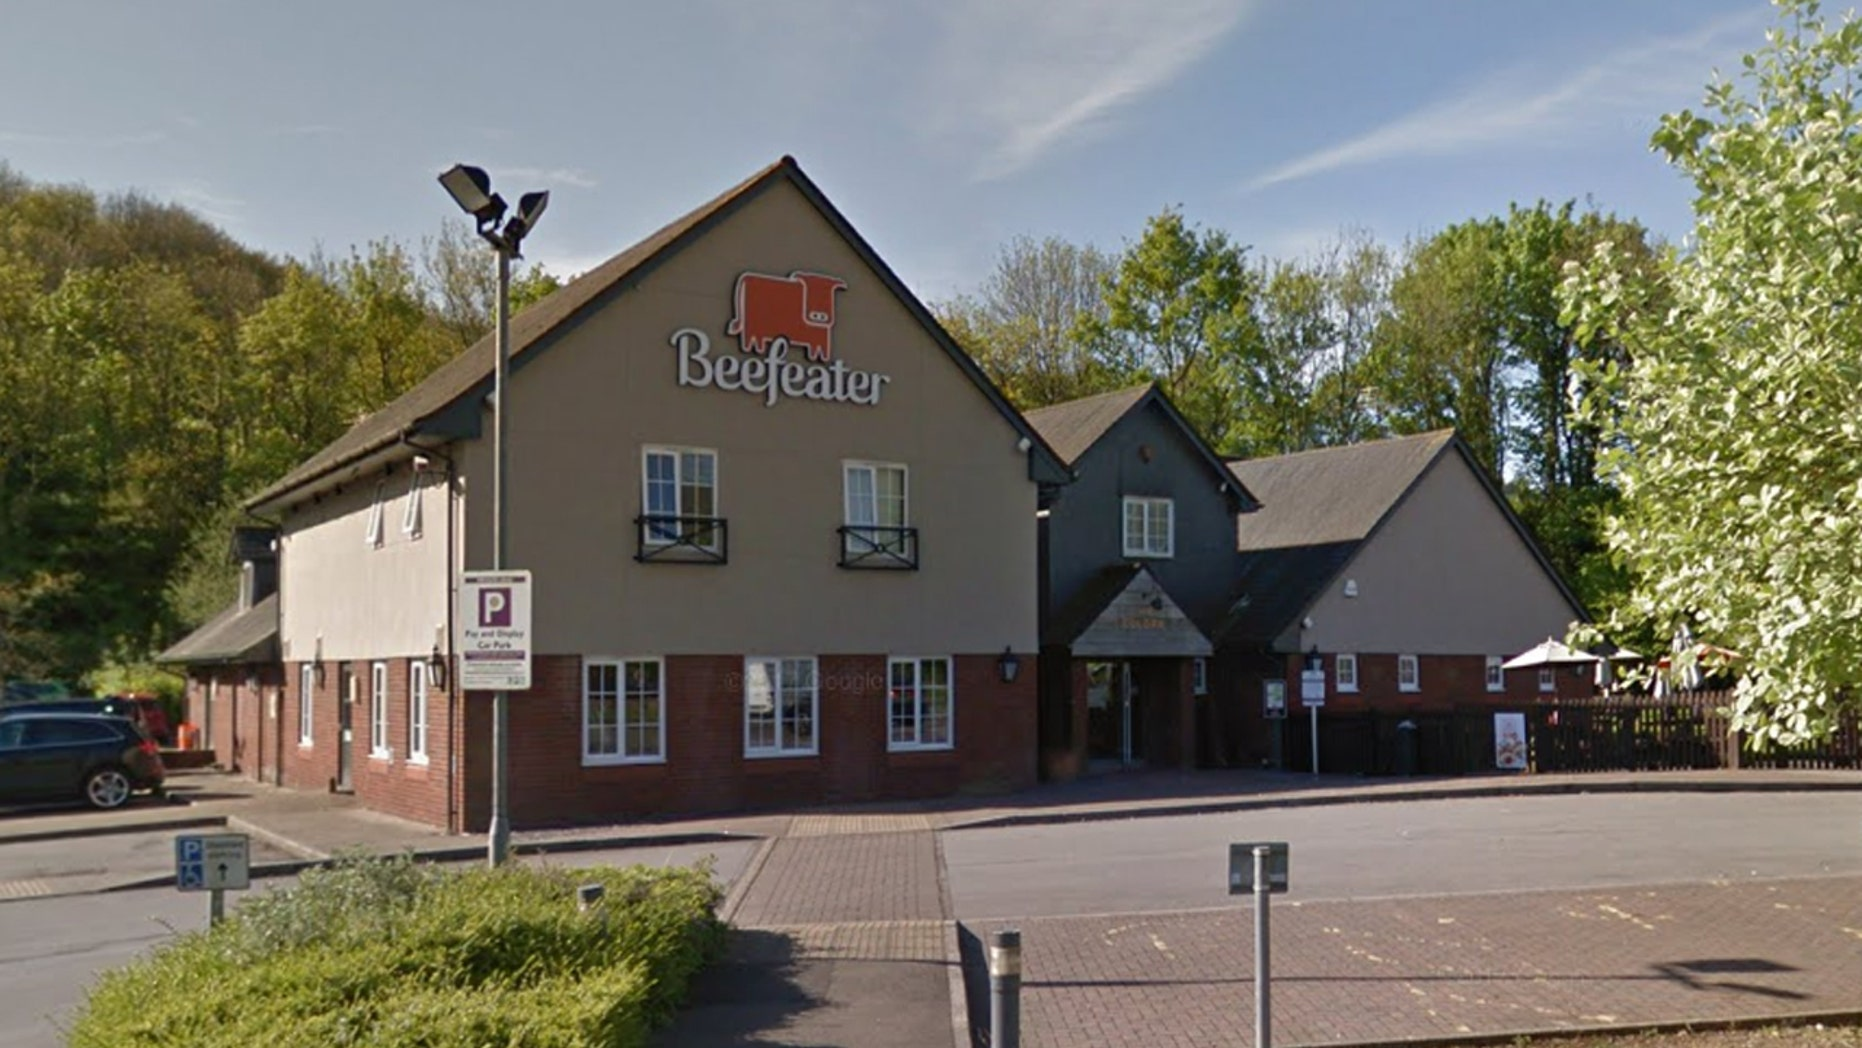 A woman was banned from her favorite restaurant, Beefeater steakhouse in Wales, after she complained too many times.